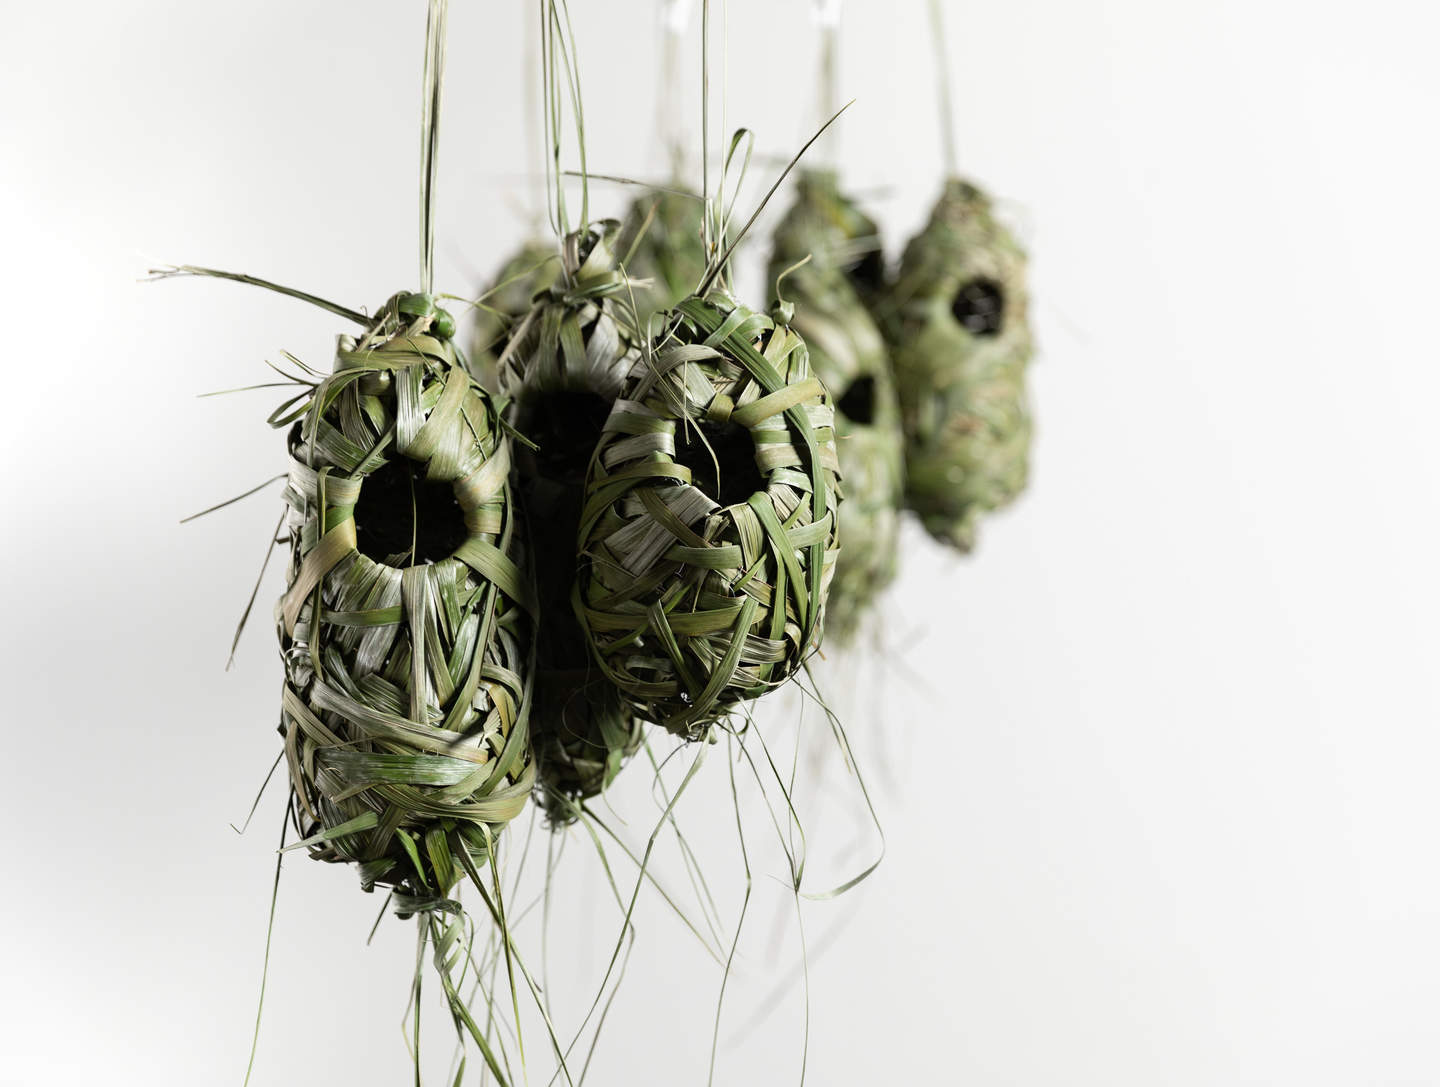 A group of suspended pendant shaped bird nests